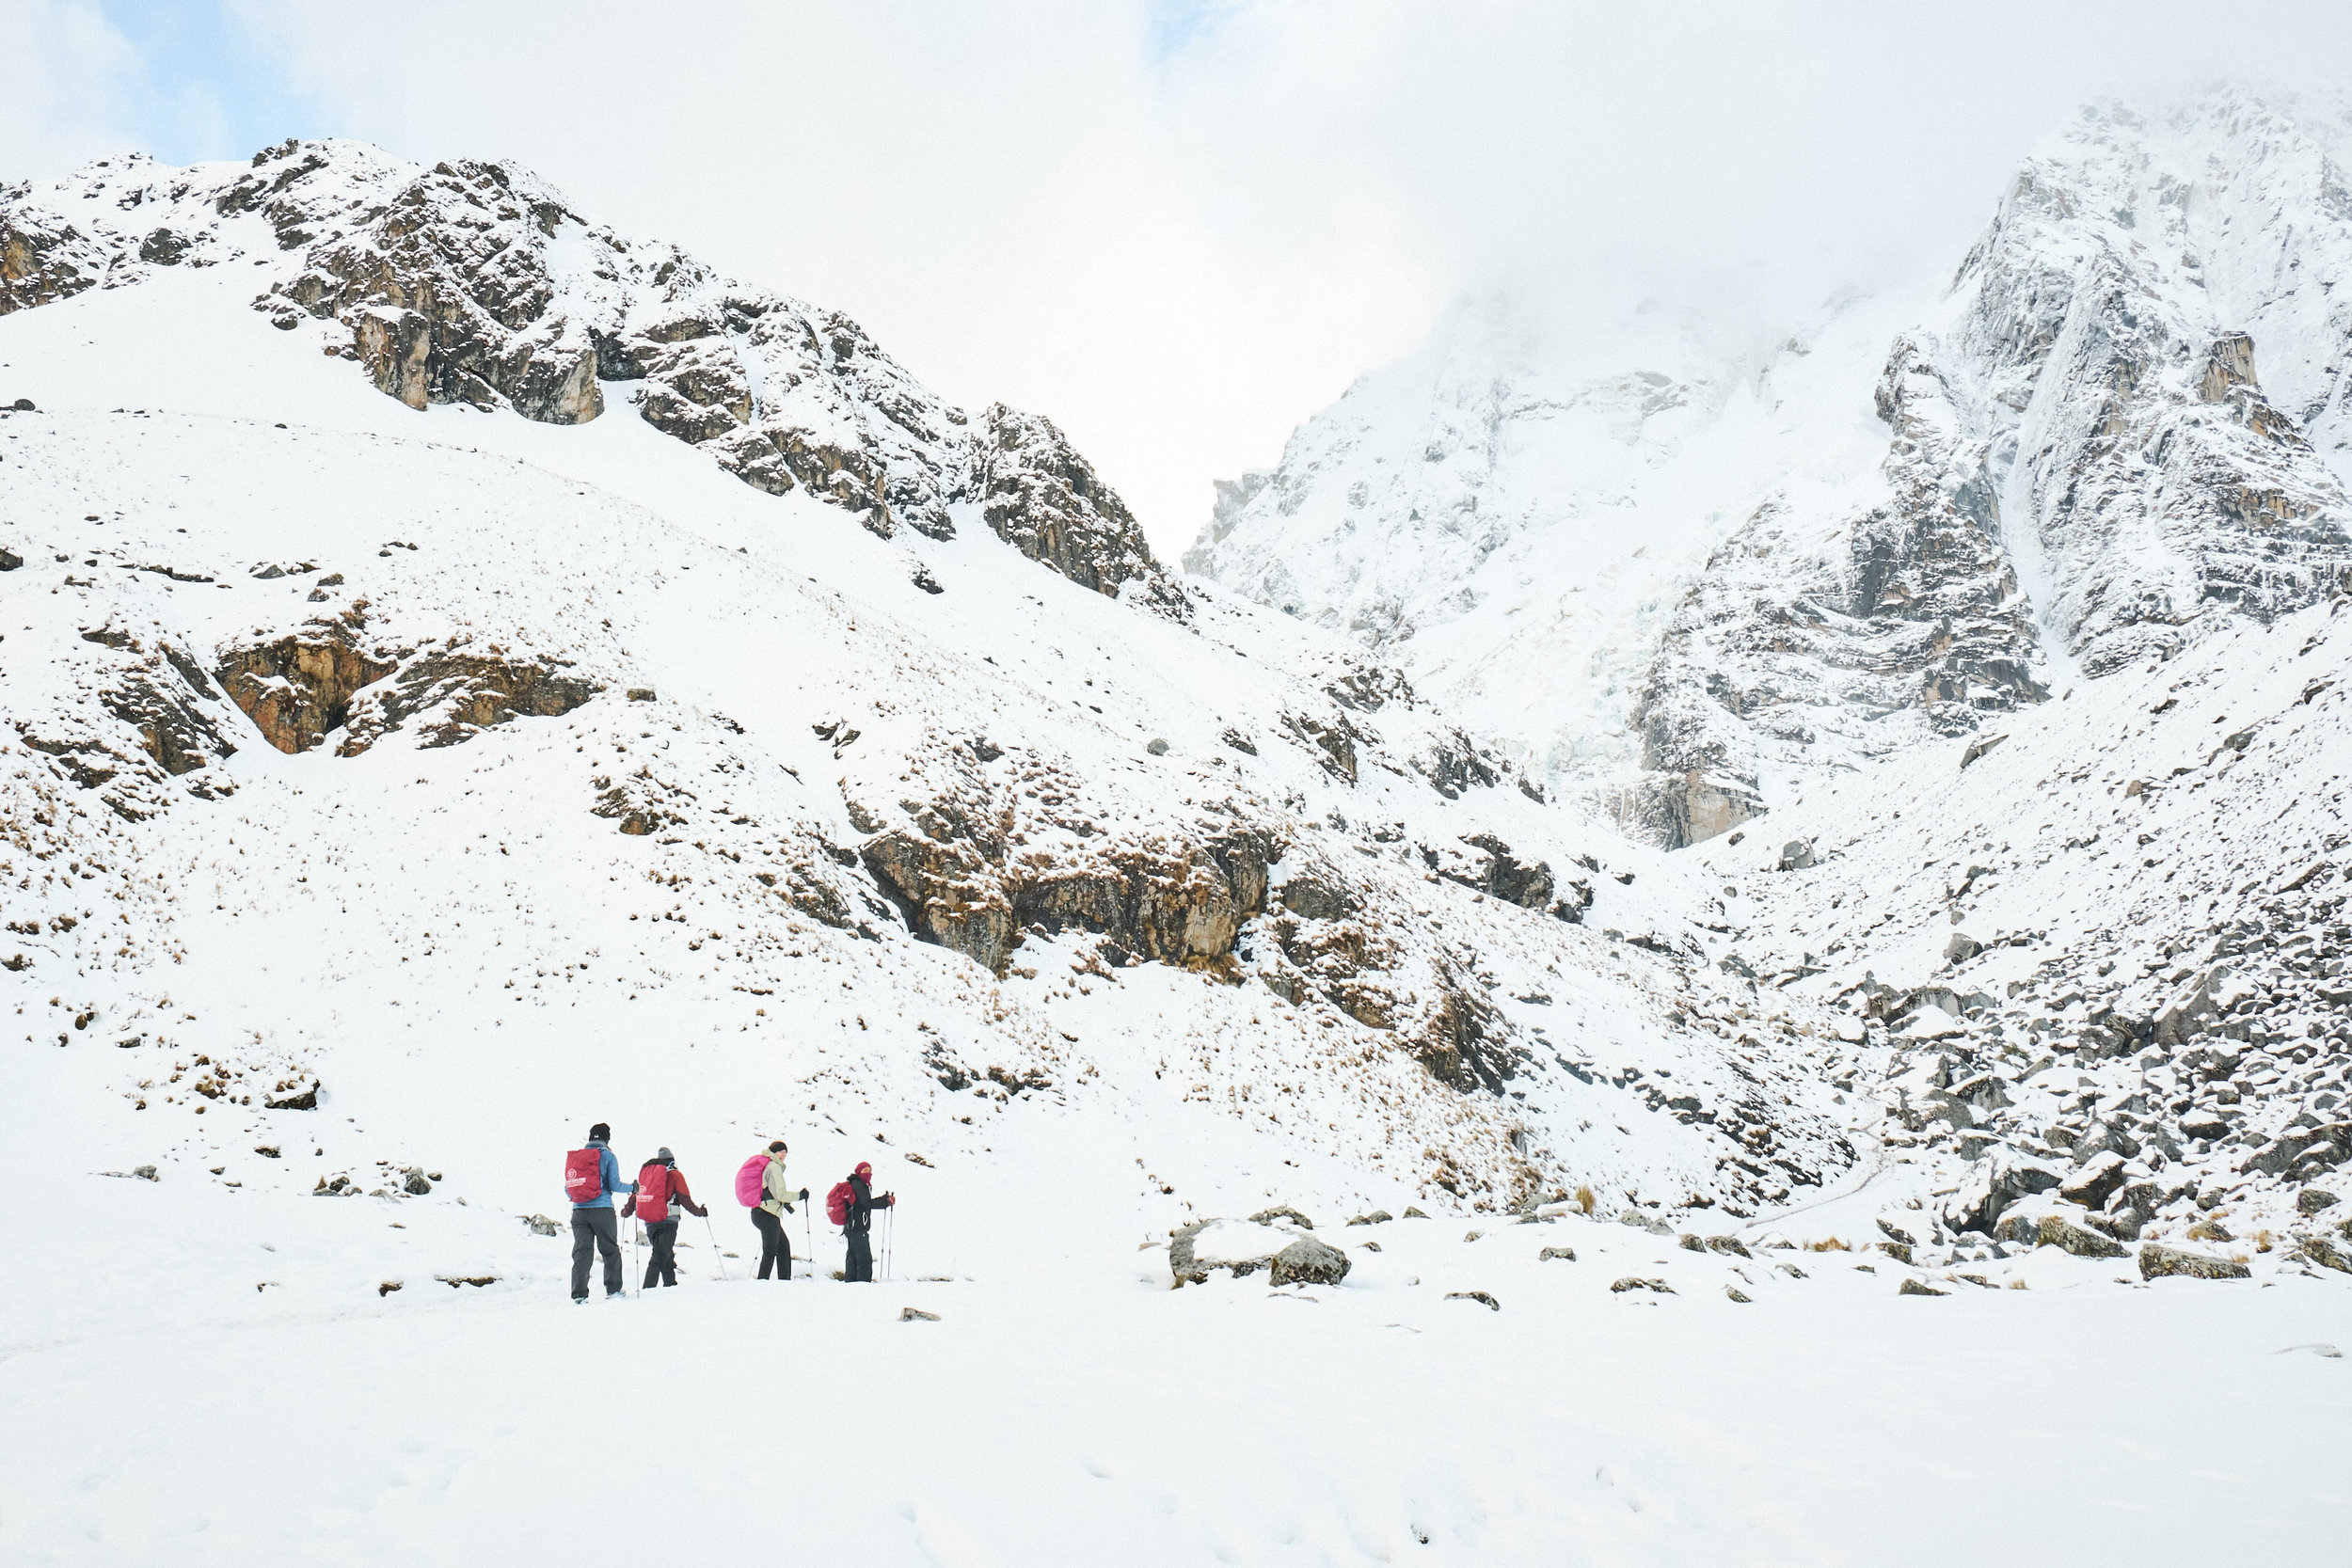 DAY 2: VAMANOS! - CUSCO to SORAYPAMPA to SOIROCOCHAElevation: 3,400 - 3,900 - 4,400 mHiking Time: 4 - 5 hoursDistance: 9 km